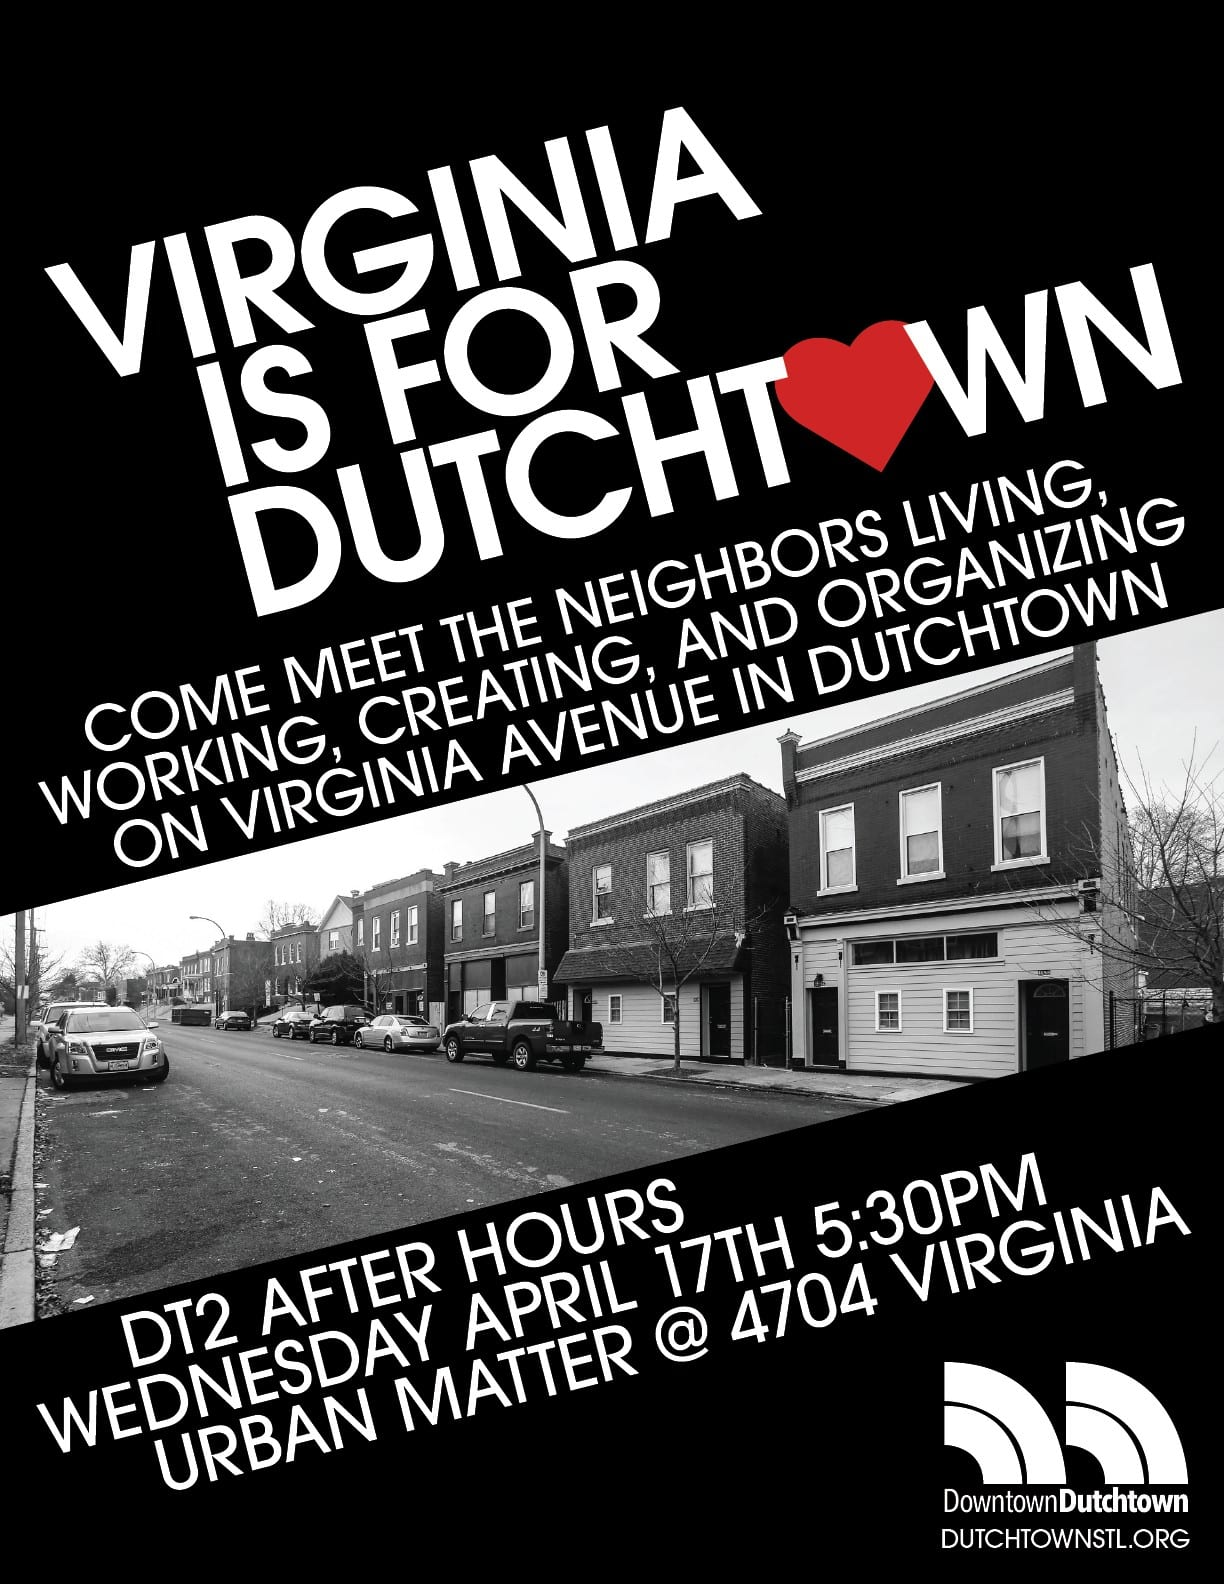 Flyer for Virginia Is For Dutchtown event at Urban Matter.